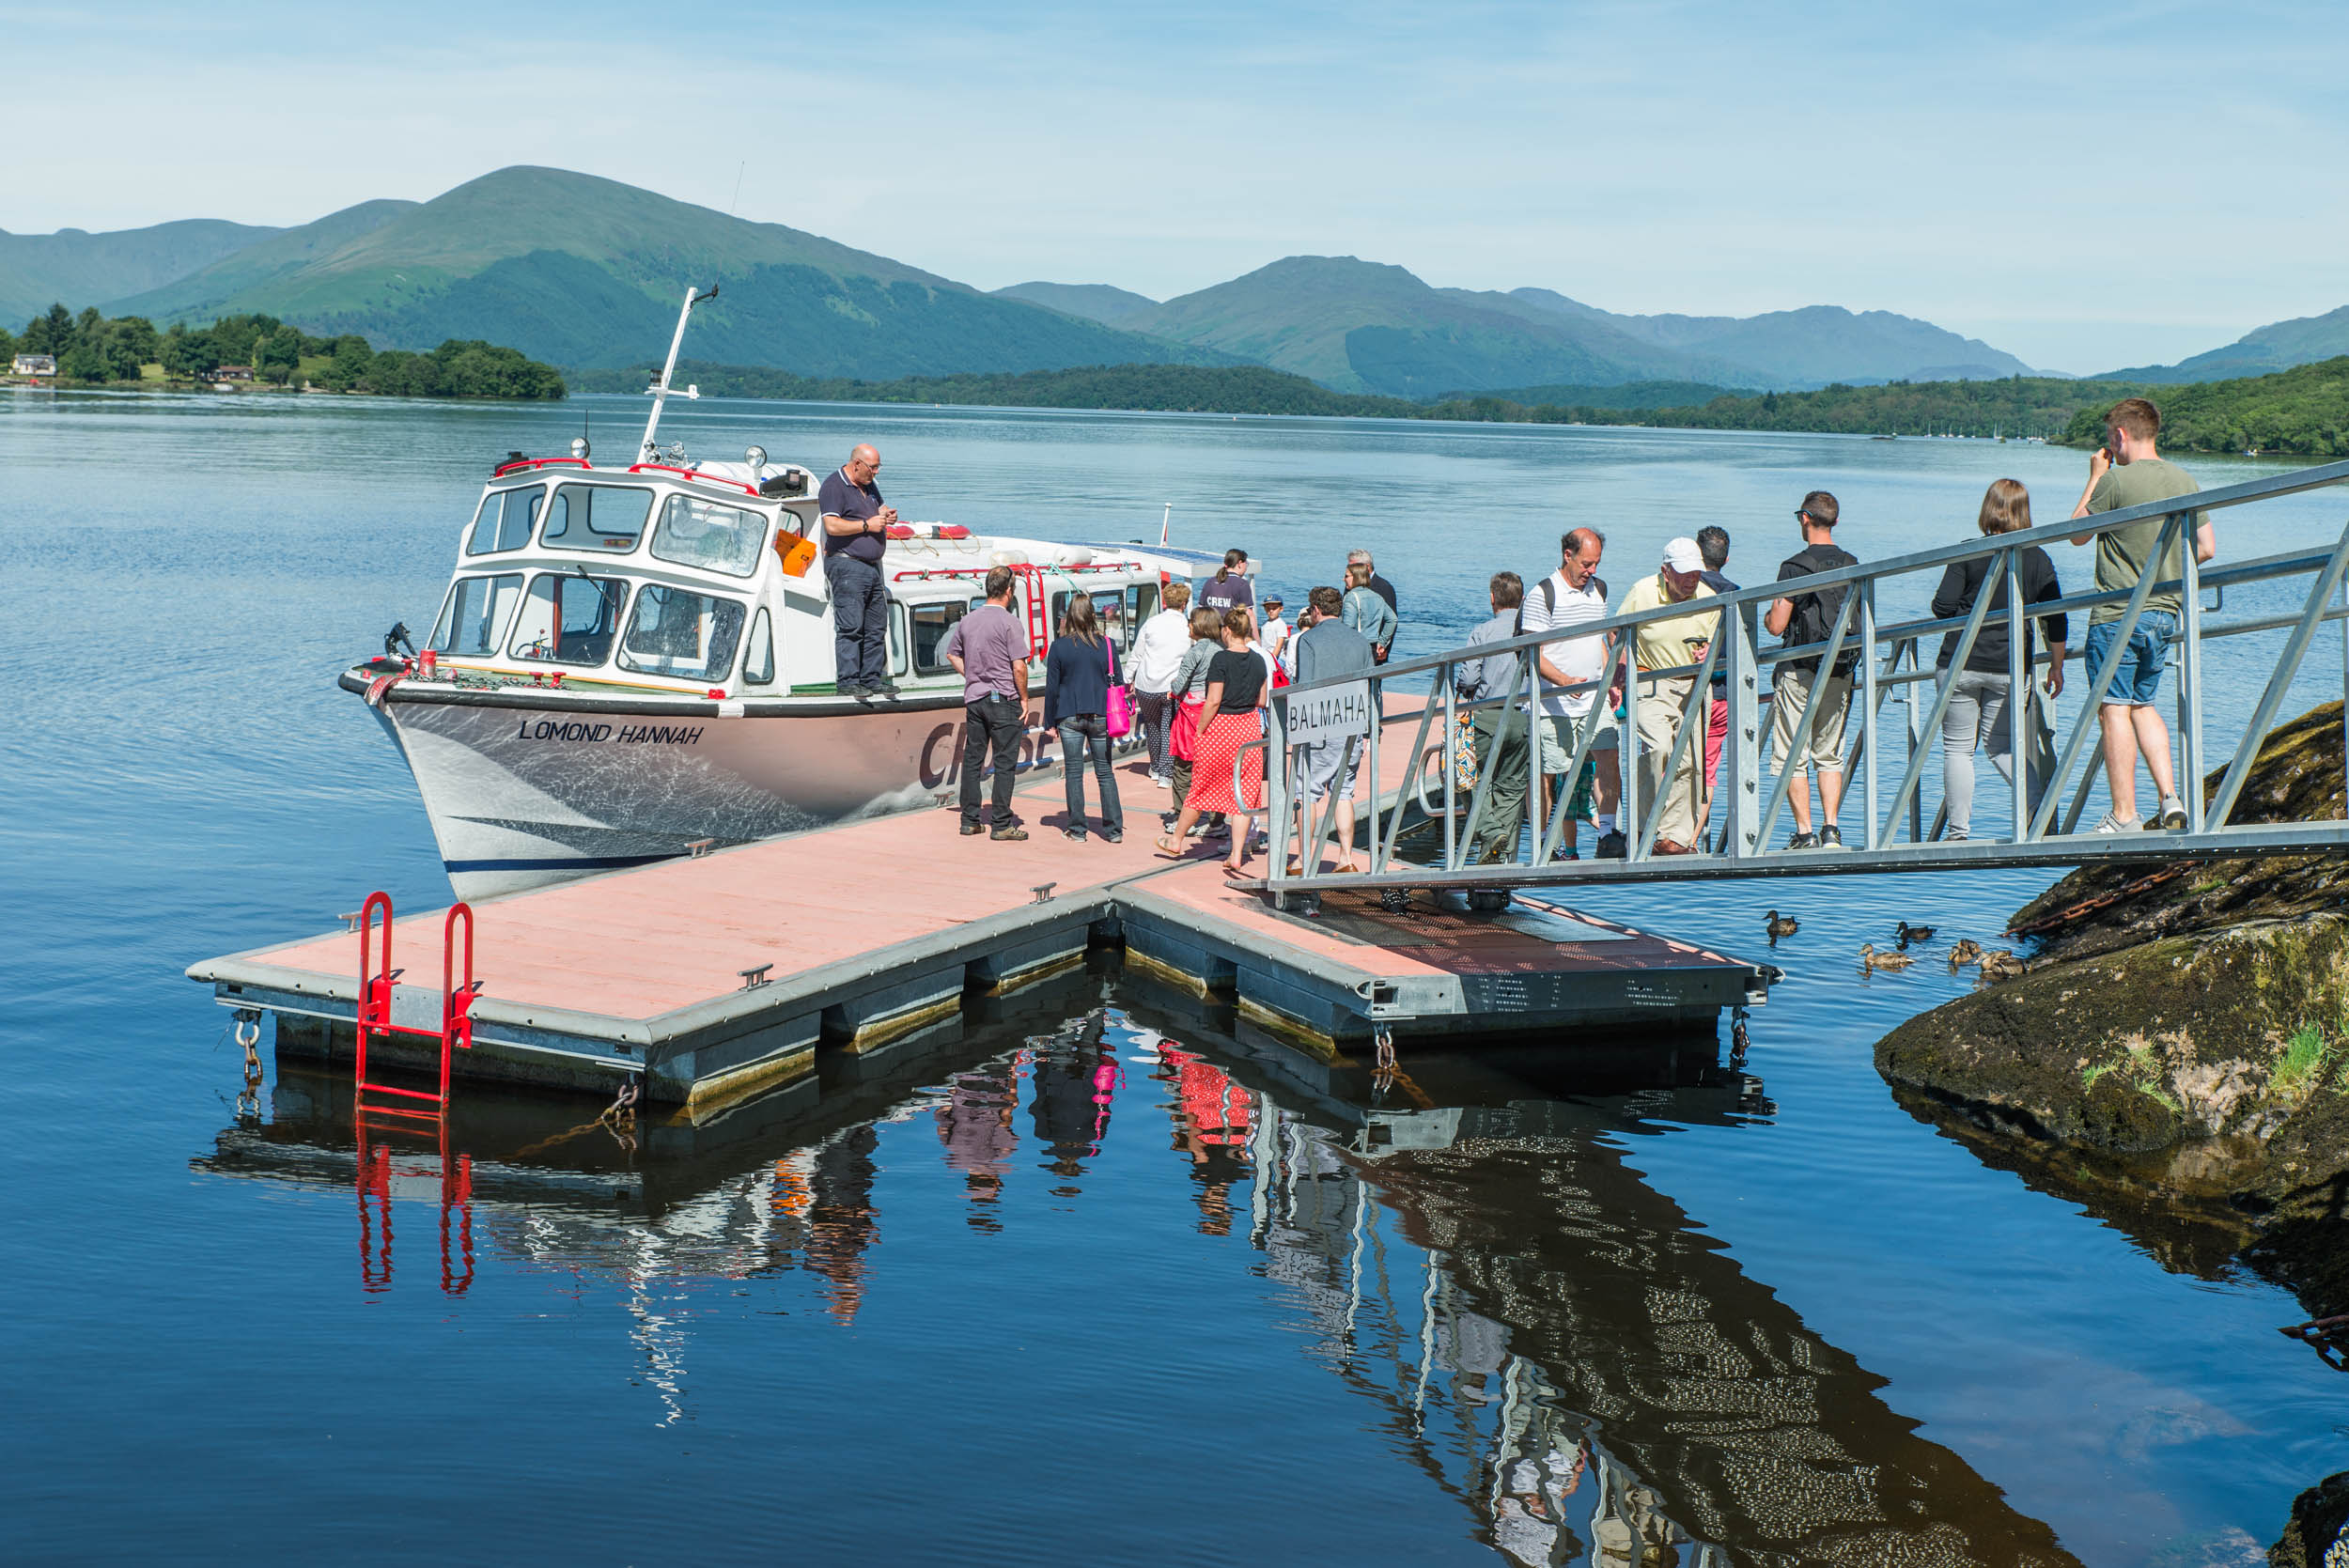 Balmaha Pontoon, Loch Lomond